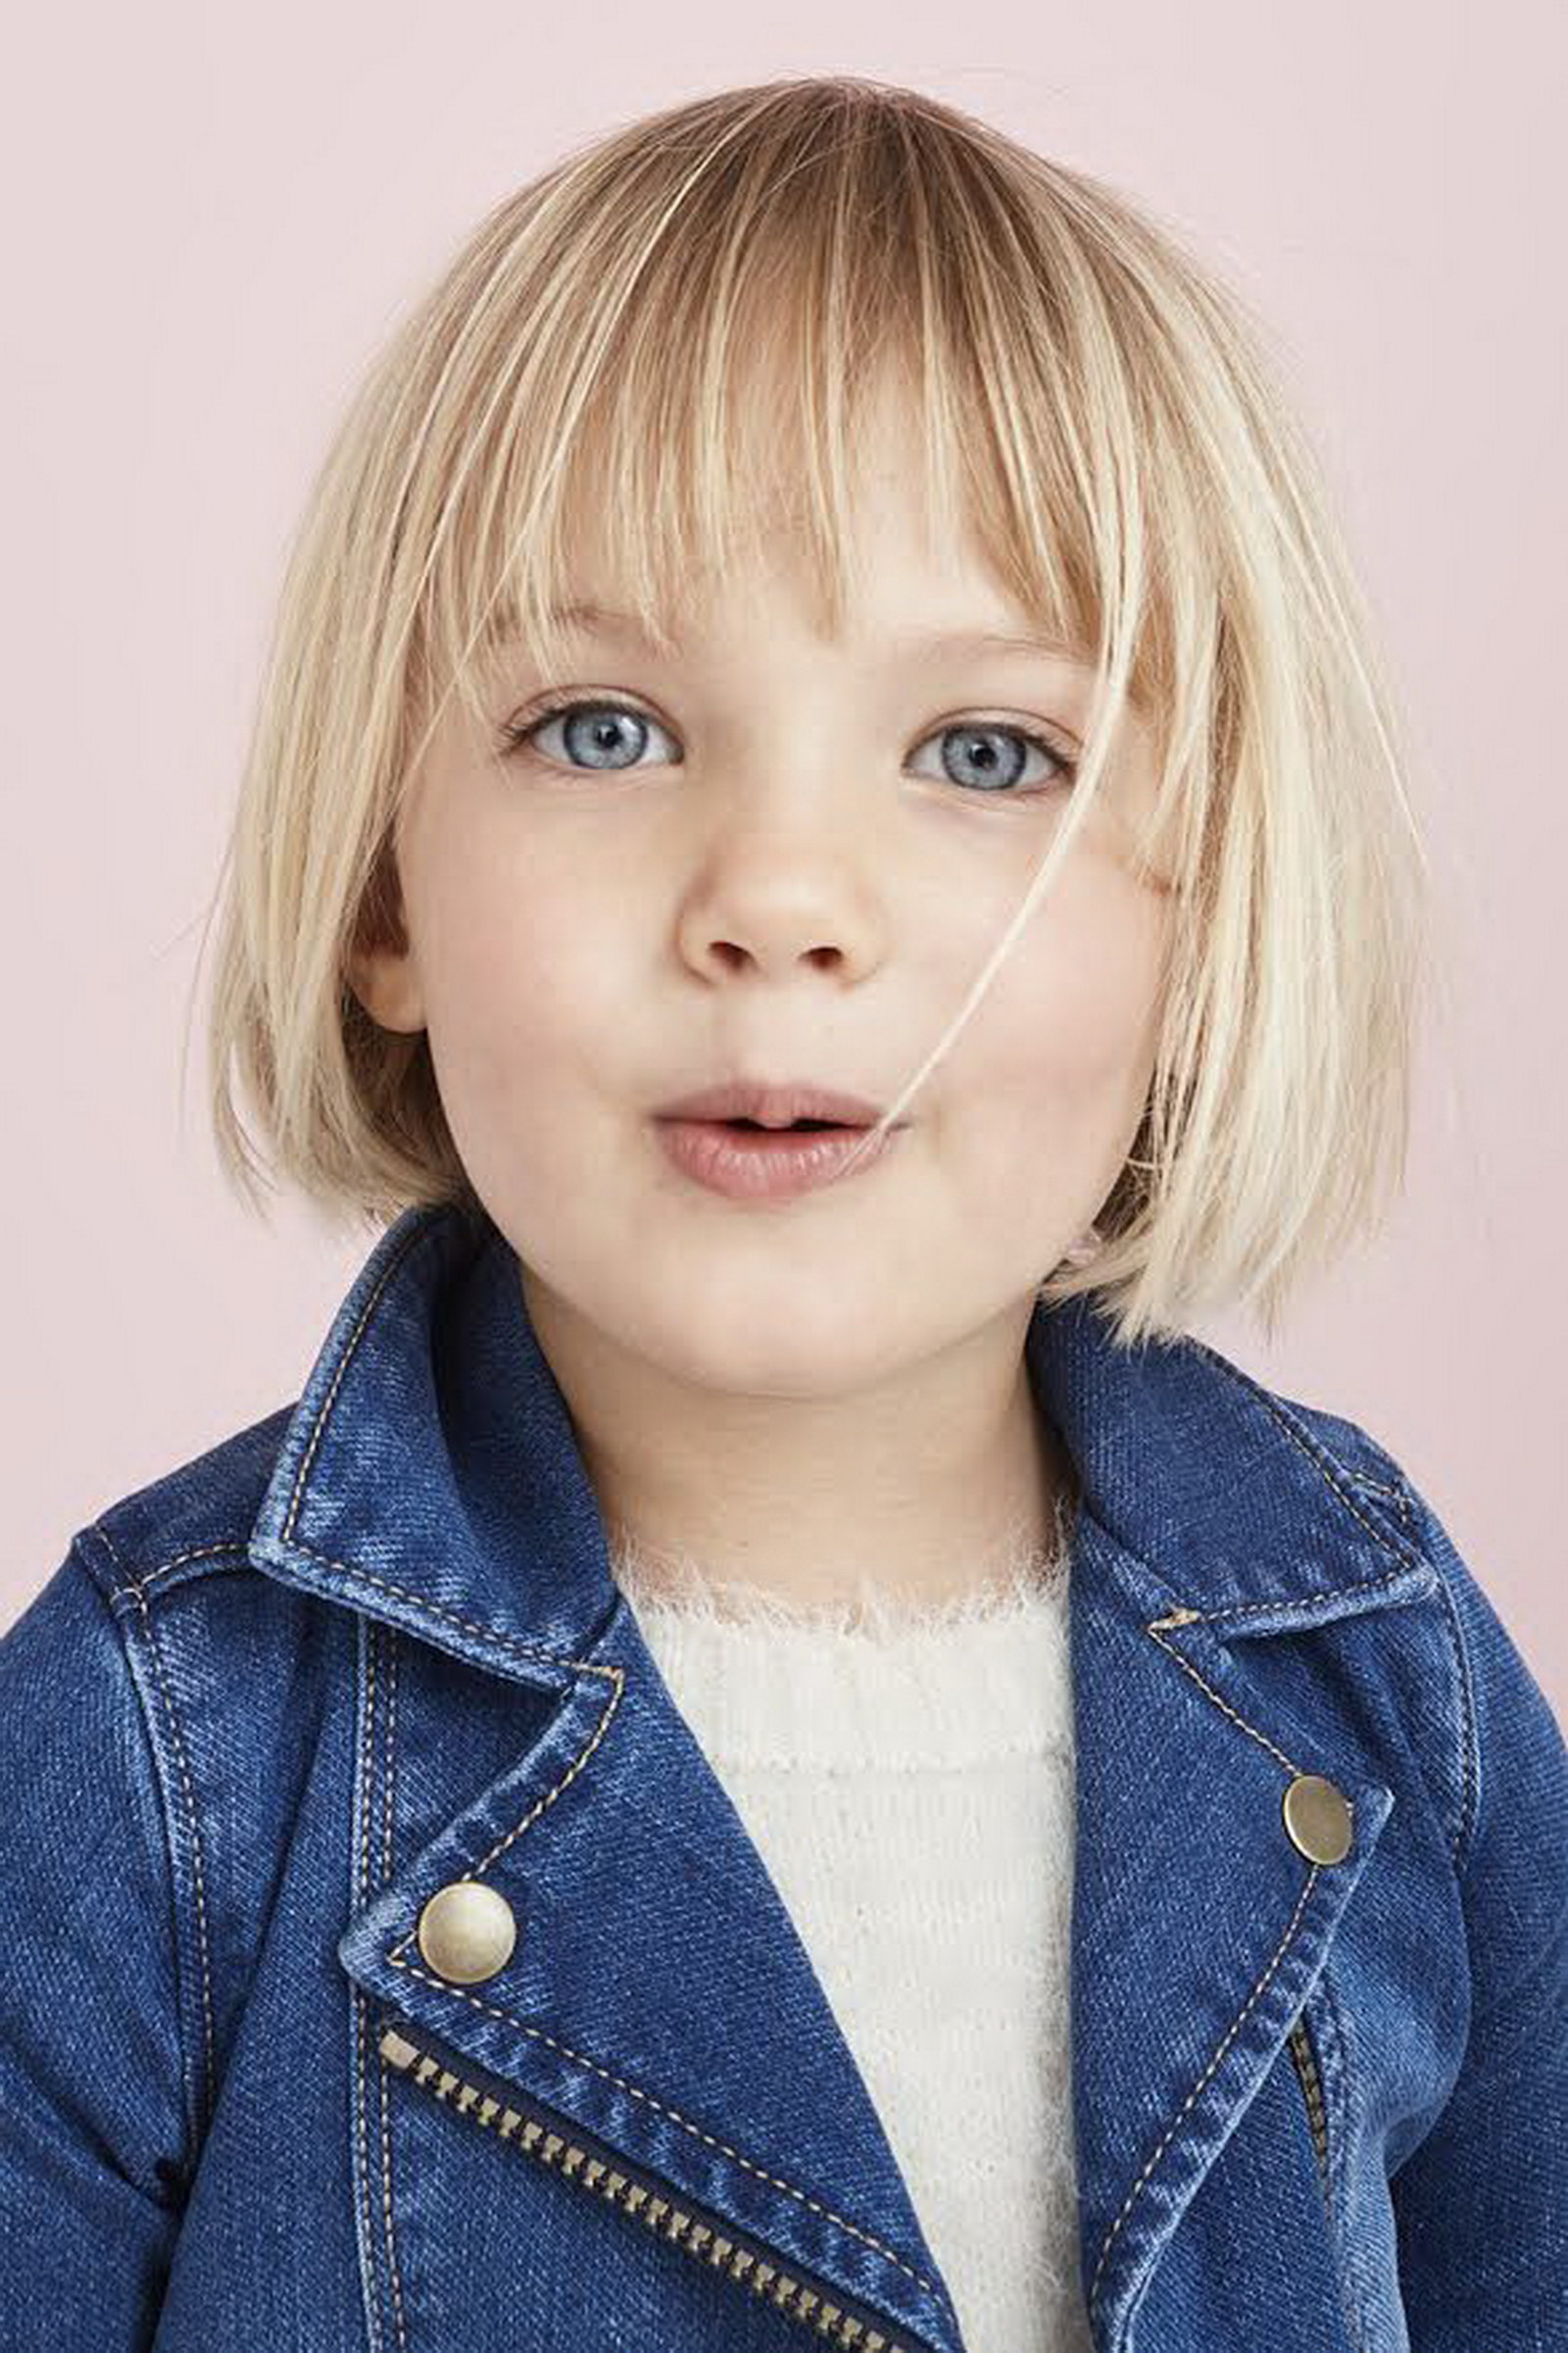 Agence Photo Enfant Agence Denfants Mannequins En Californie Bensimon